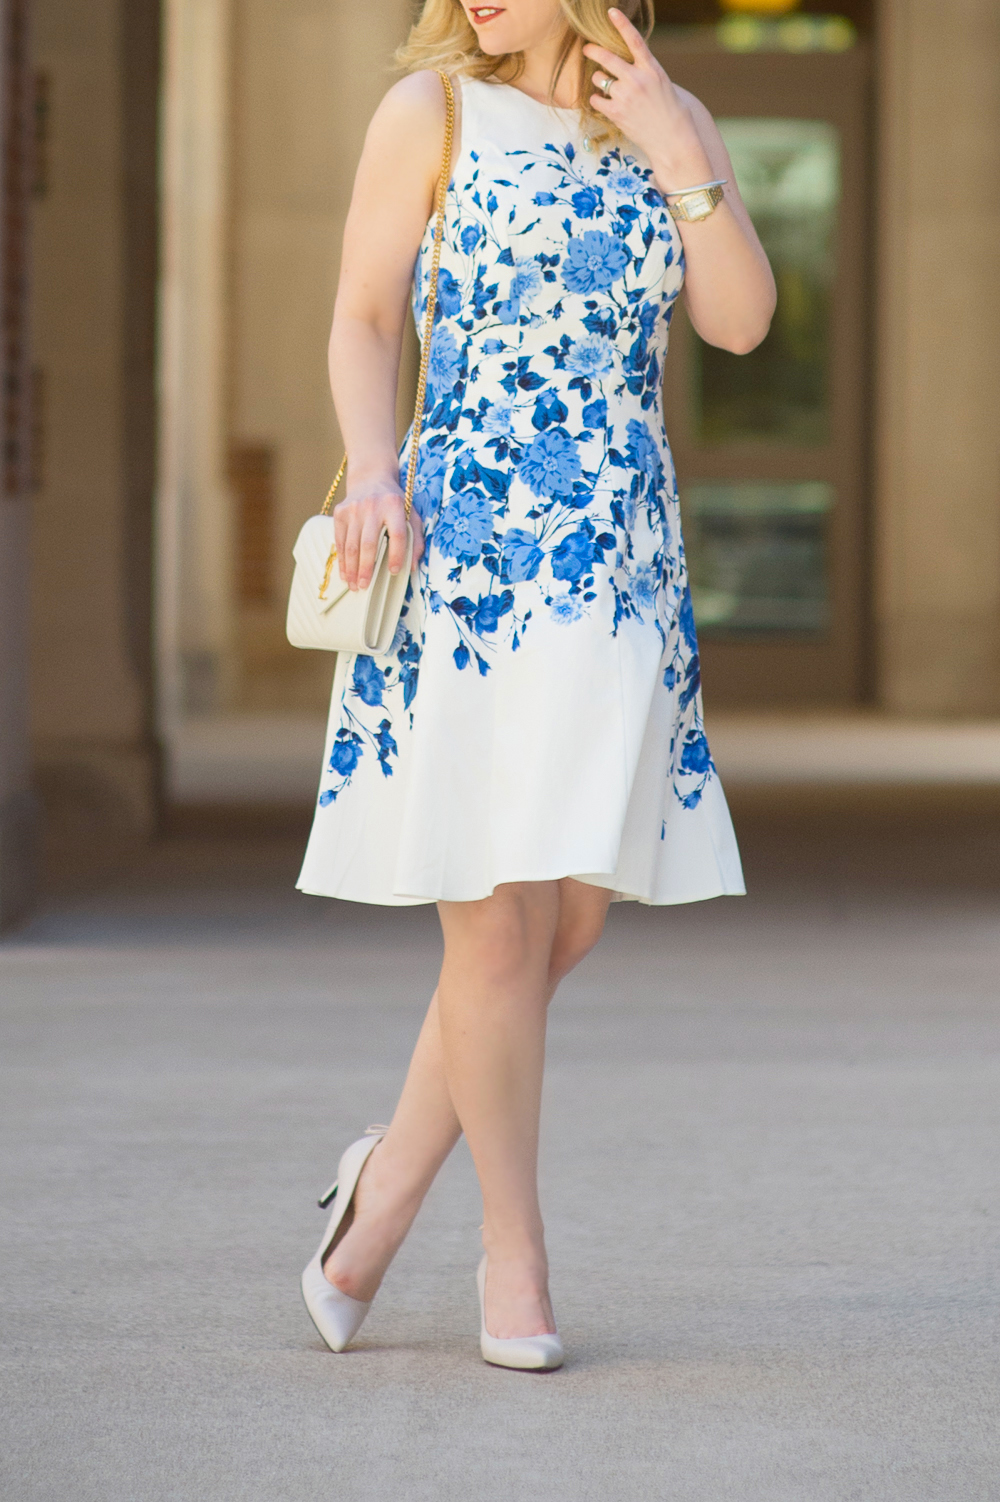 Petite_Fashion_and_Style_Blog___Maggy_London_Marlene_Fit_and_Flare_Dress-19.jpg